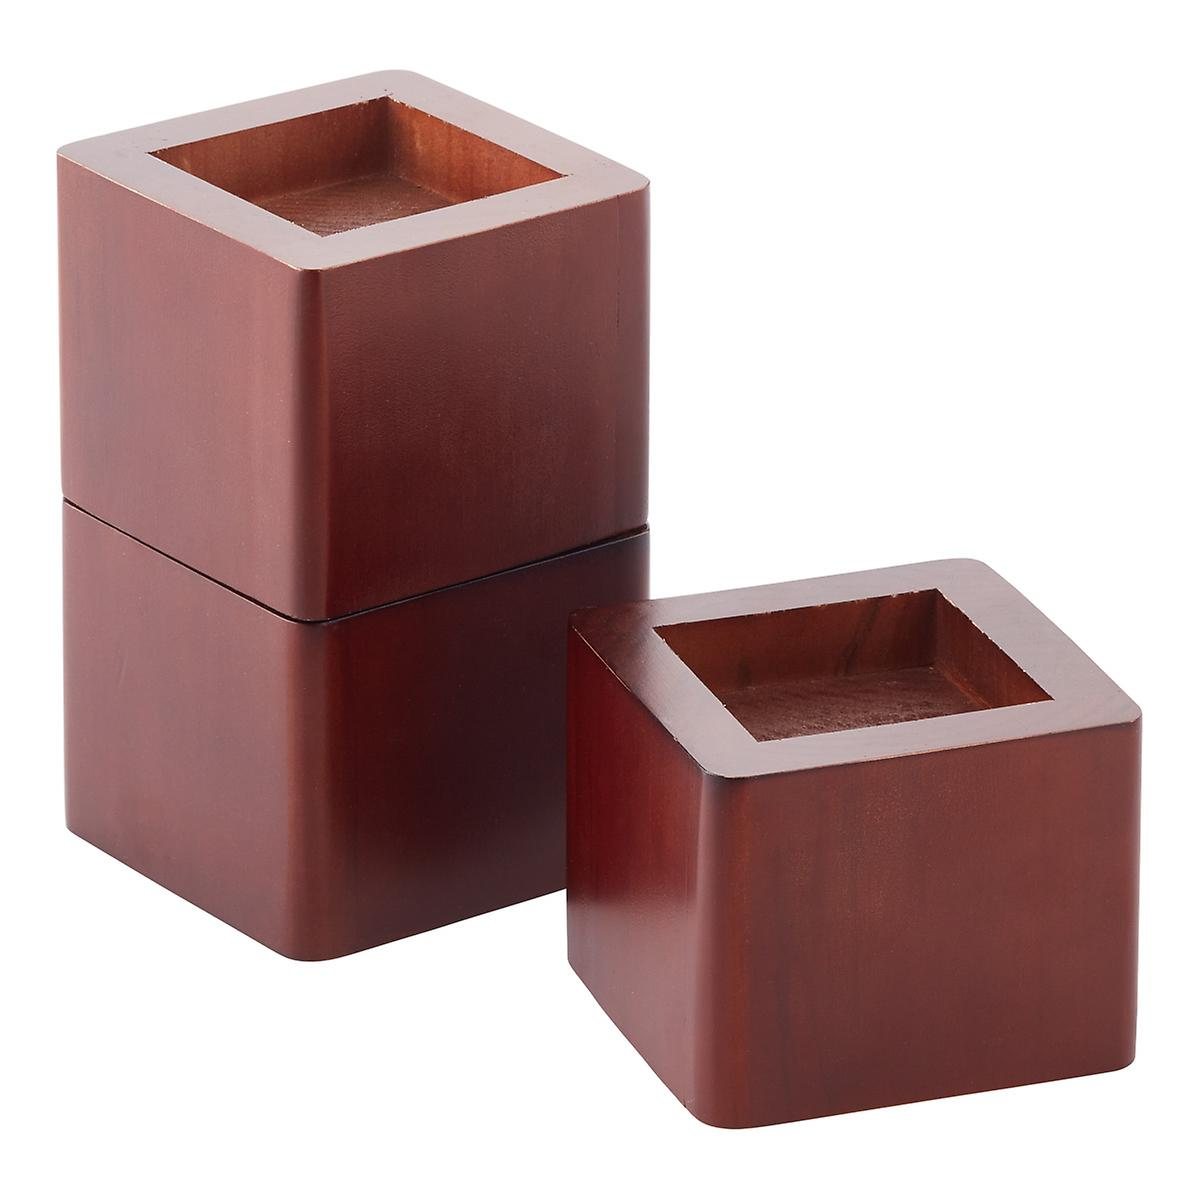 Walnut Solid Wood Bed Risers The Container Store